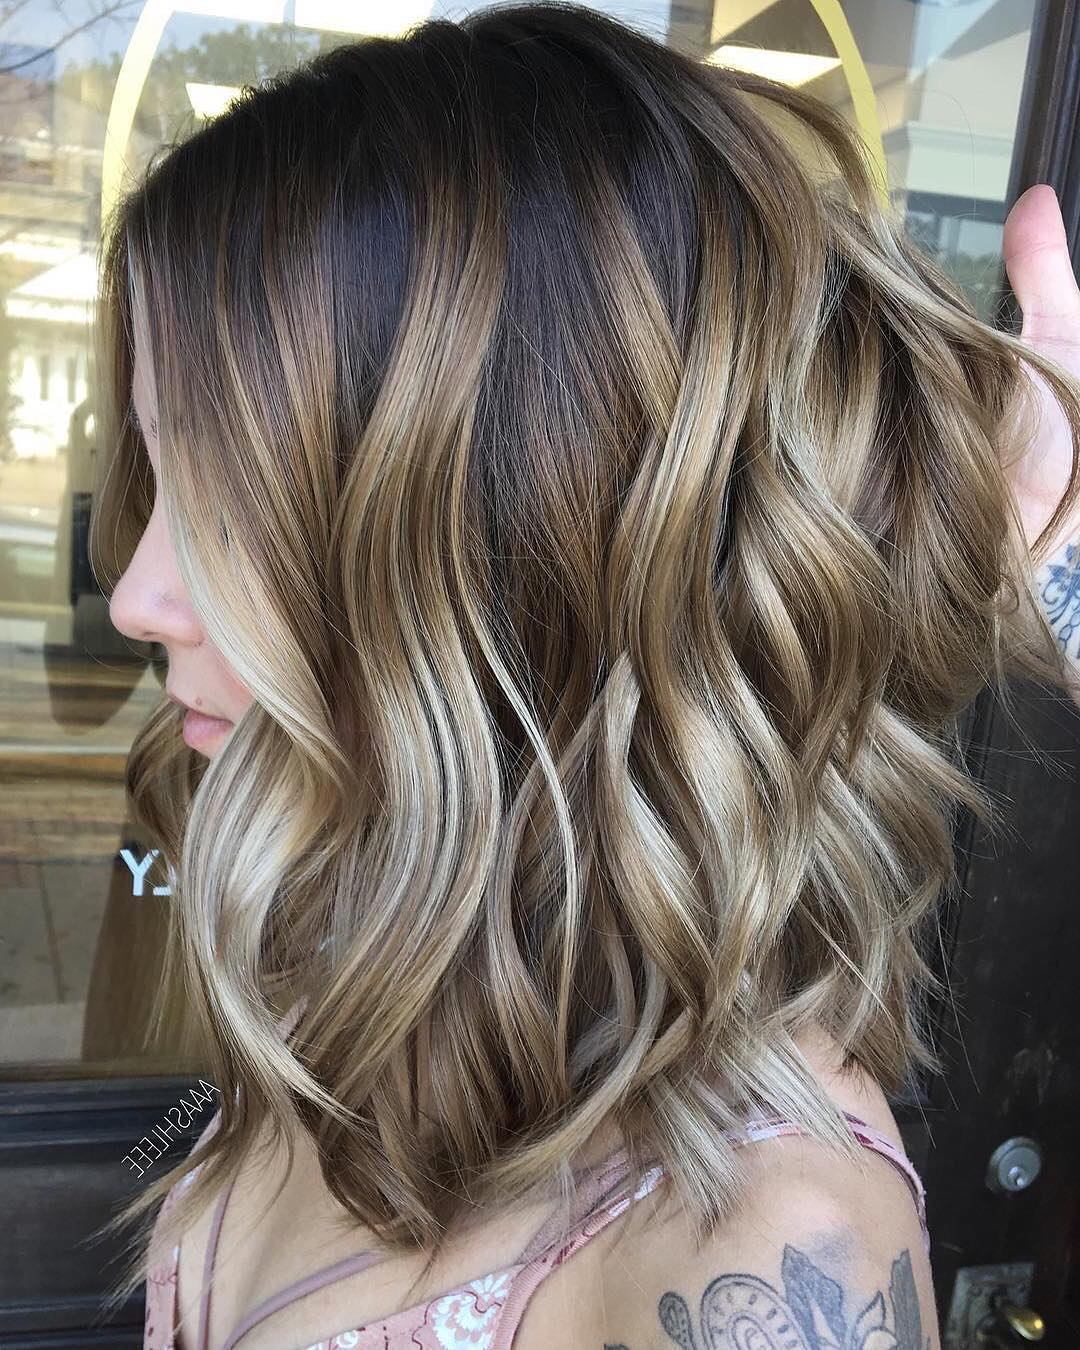 Ombre Hair Brown To Caramel To Blonde Medium Length 10 Ombre Balaya...